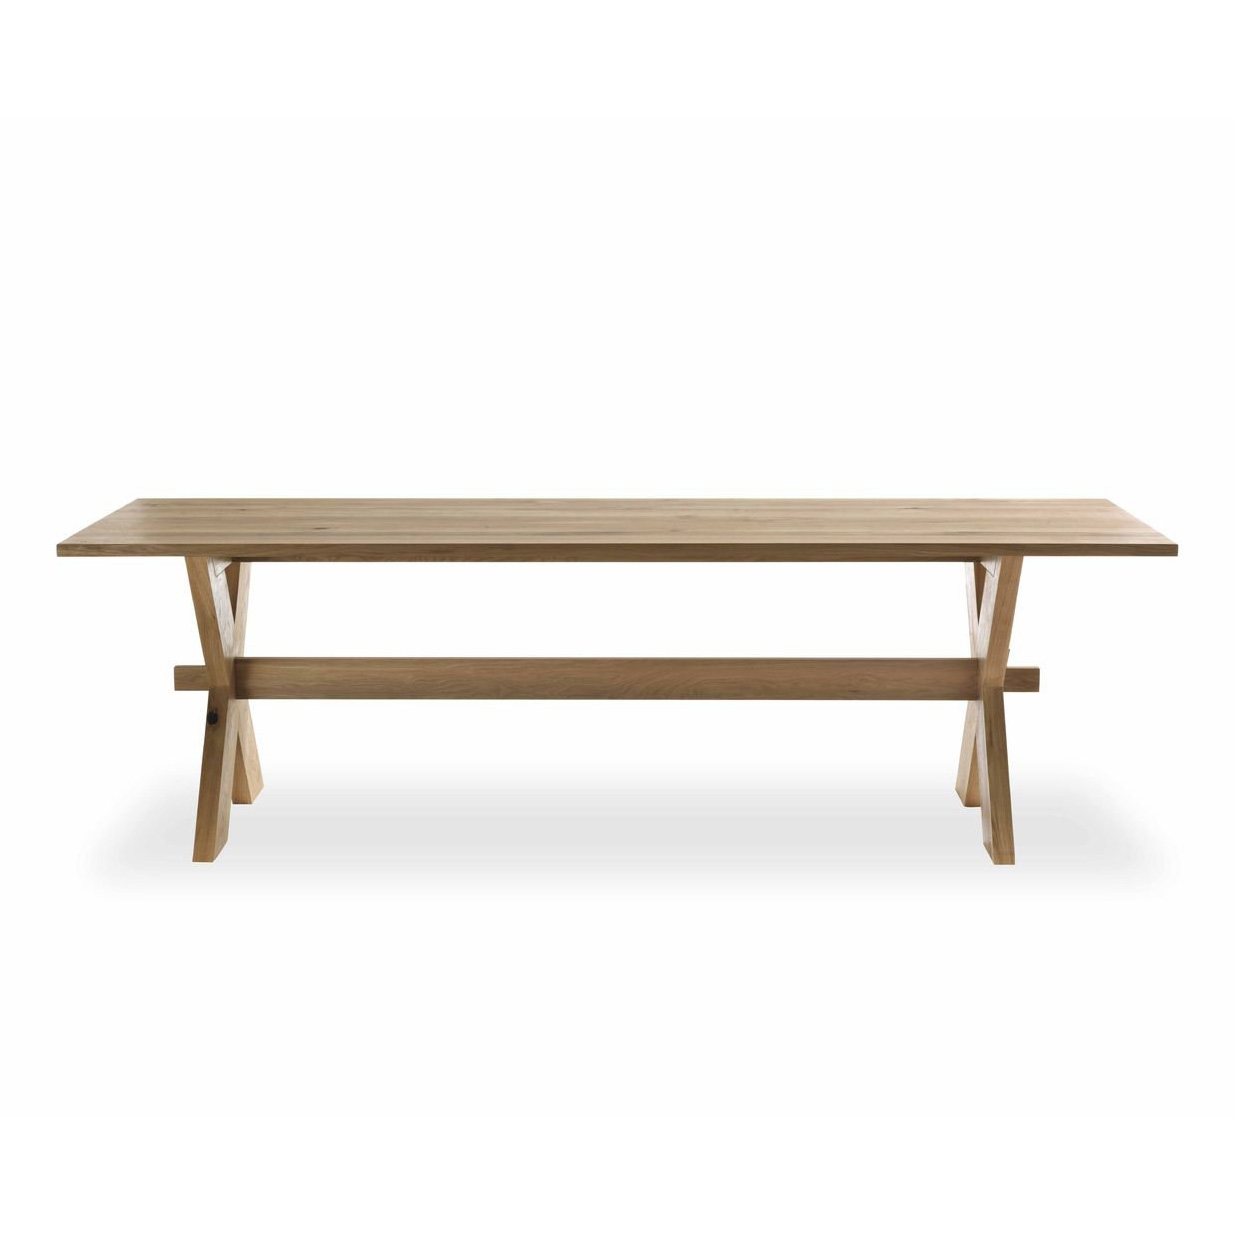 X Table dining from Riva 1920